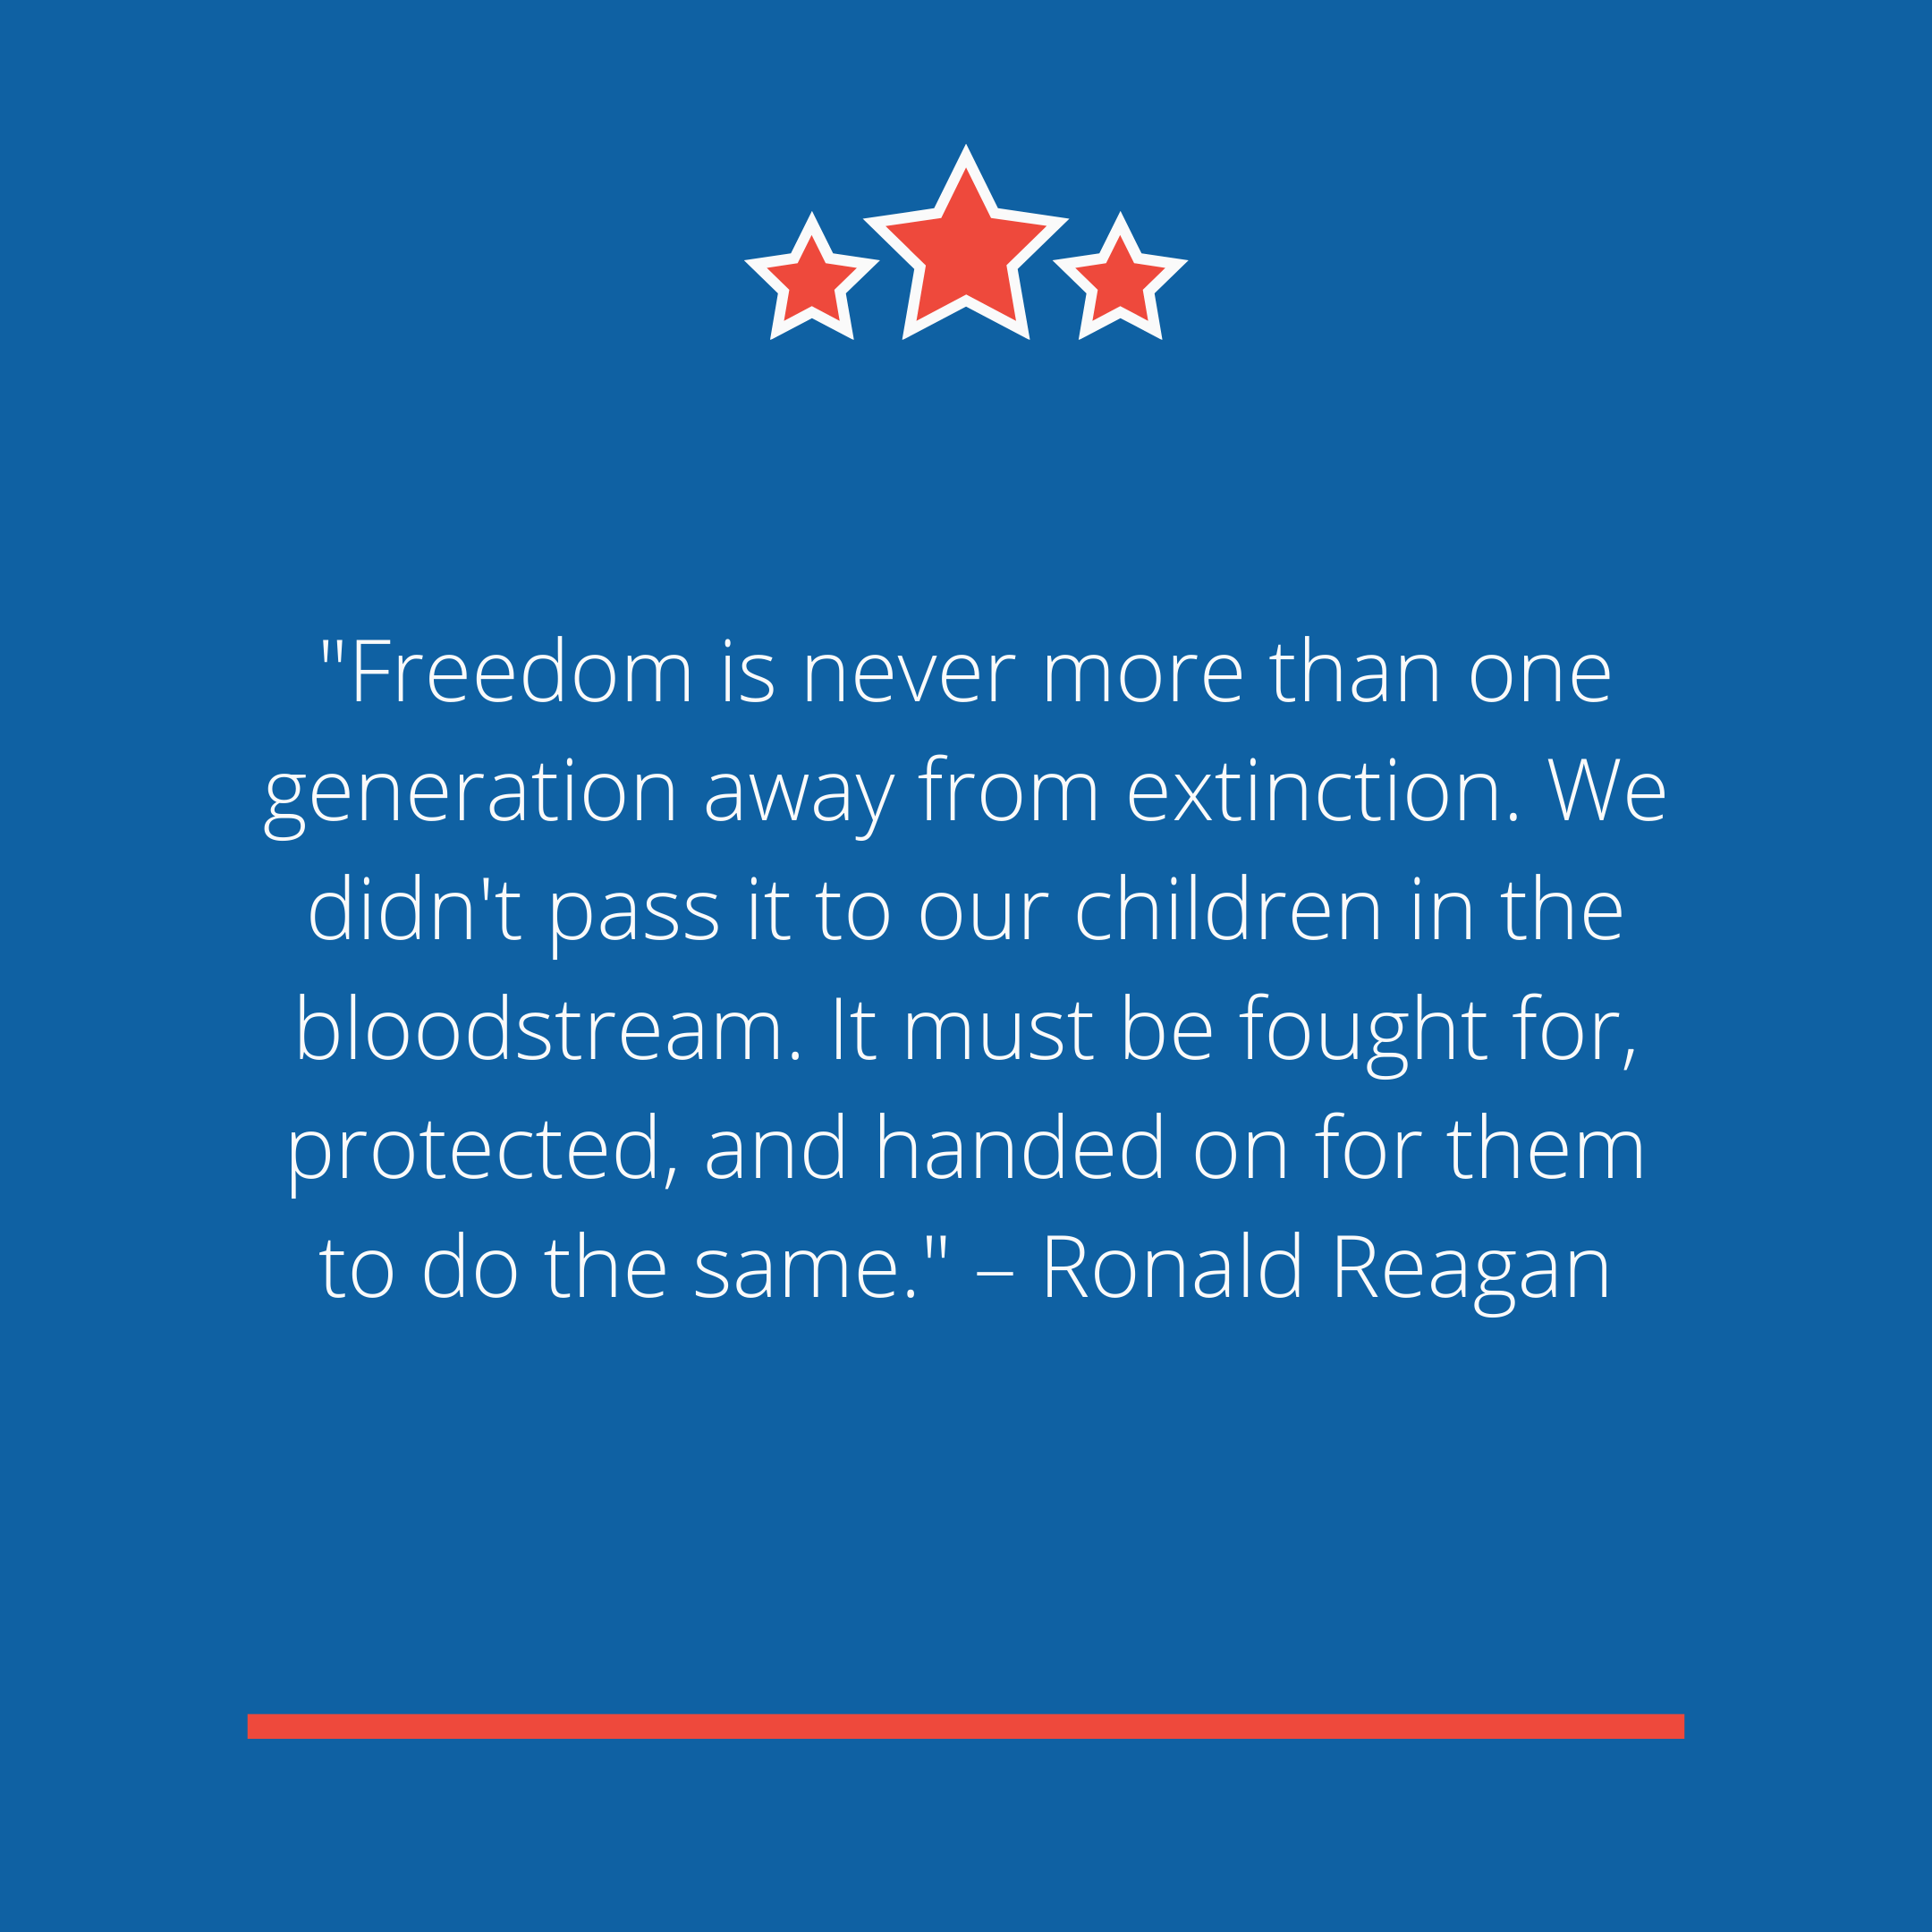 """Freedom is never more than one generation away from extinction. We didn't pass it to our children in the bloodstream. It must be fought for, protected, and handed on for them to do the same."" –Ronald Reagan"